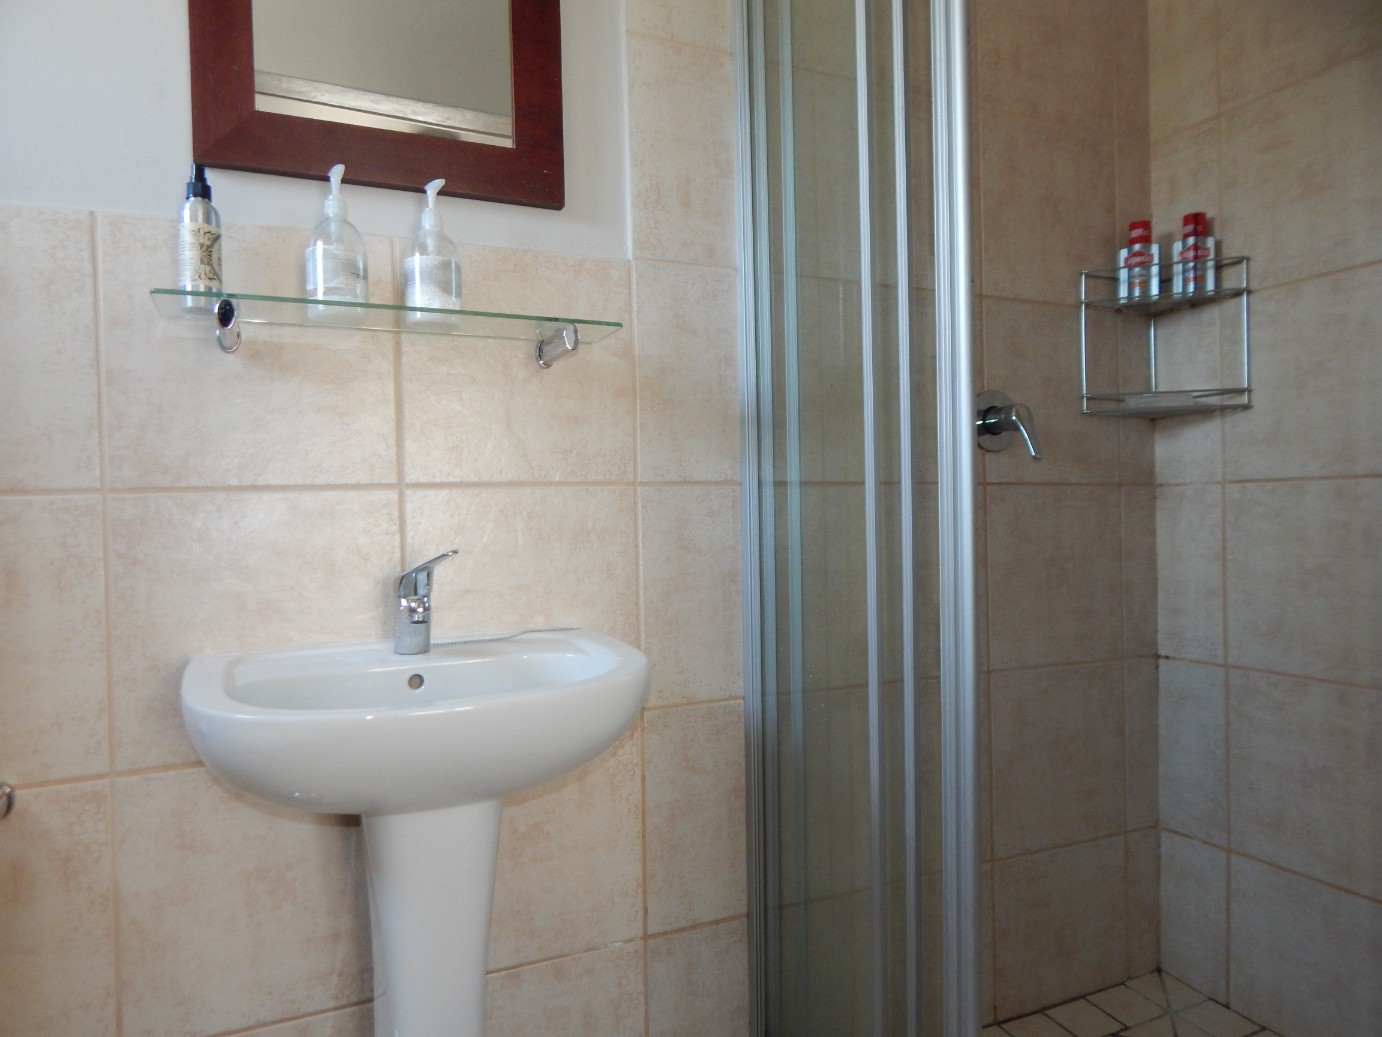 3 Bedroom Apartment for sale in Diaz Beach ENT0080239 : photo#11